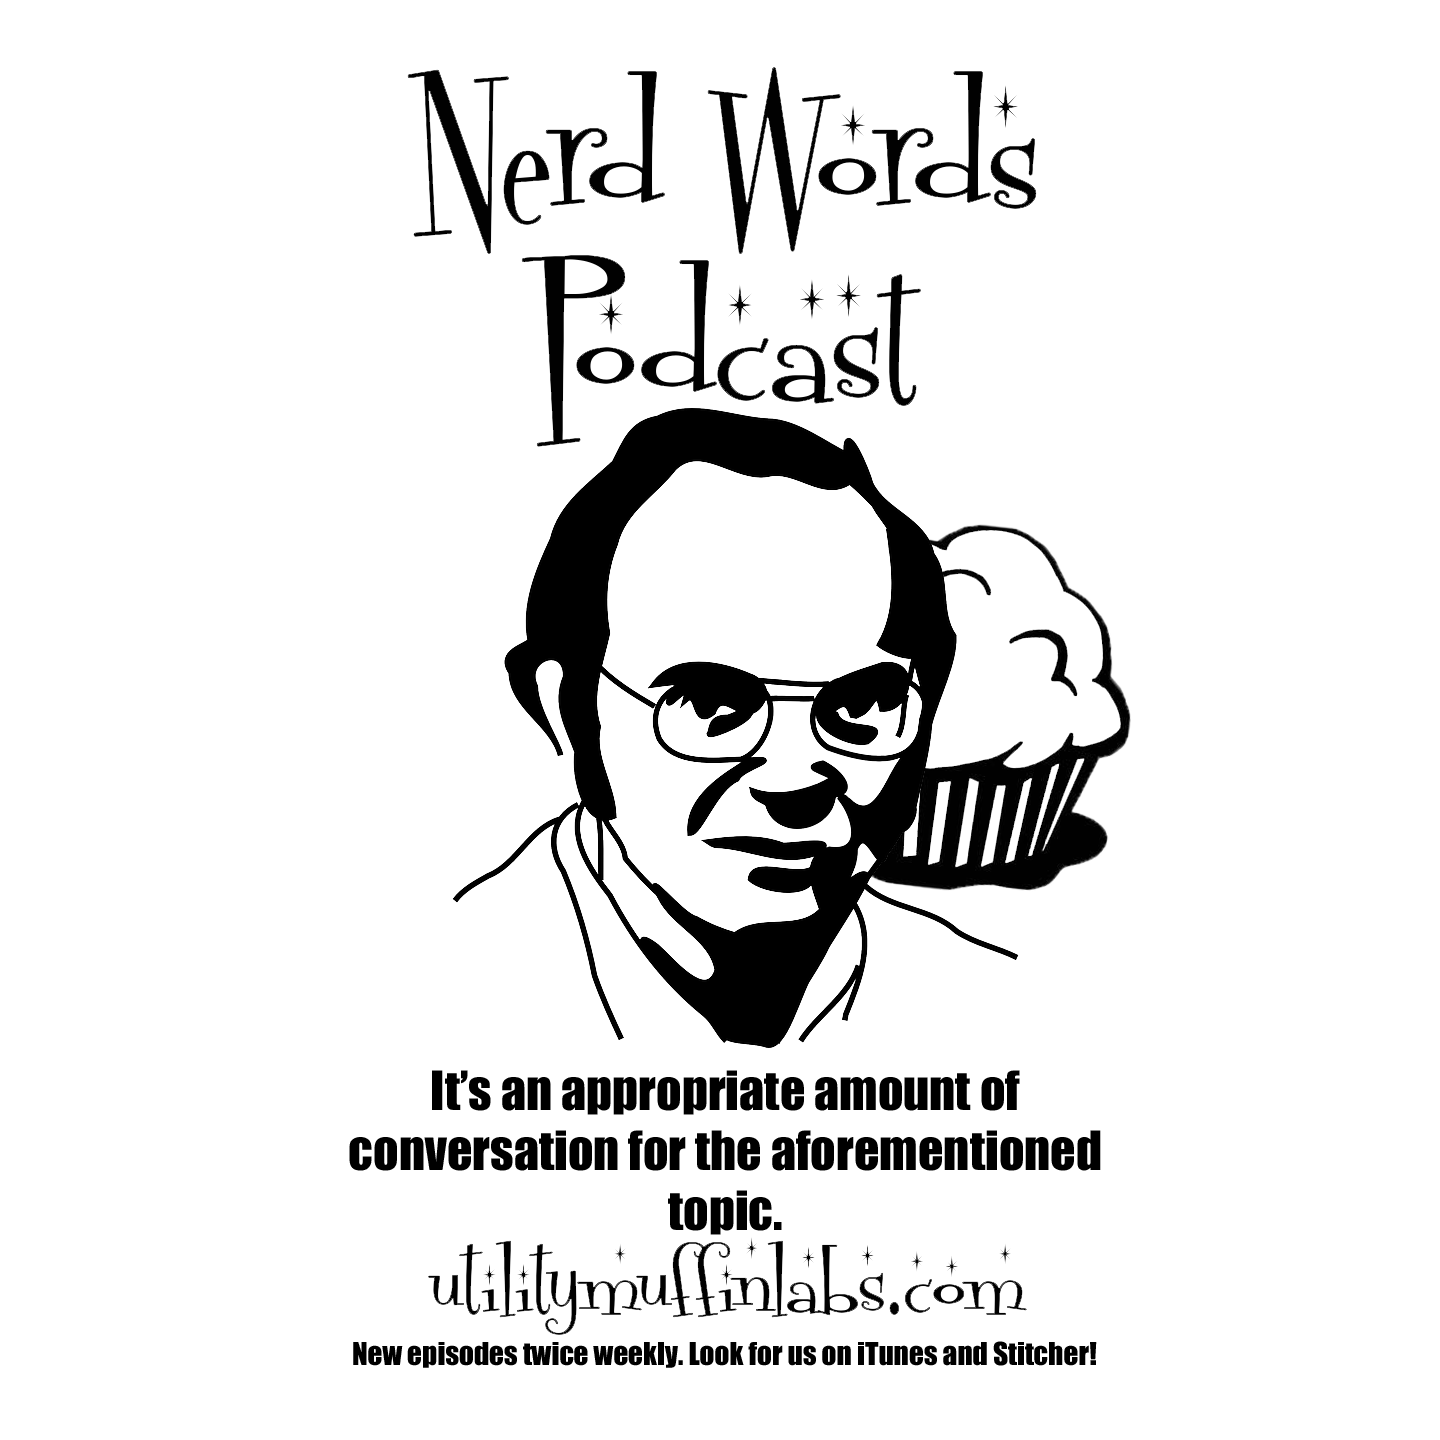 Nerd Words Podcast - Utility Muffin Labs